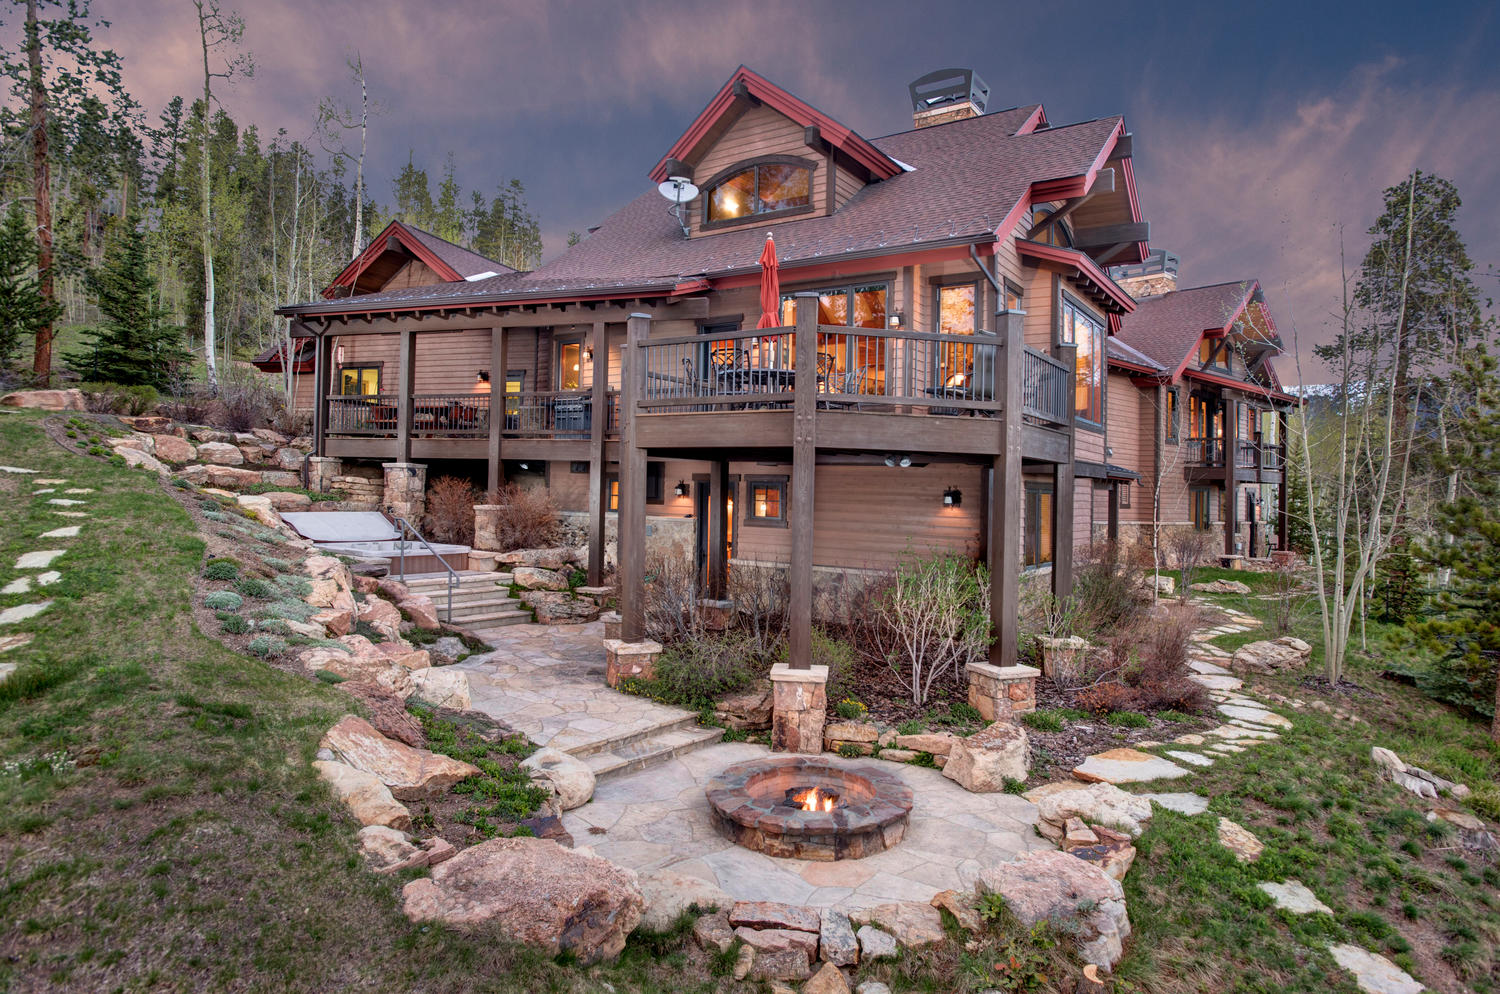 Single Family Home for Sale at Eagles Nest Golf Course 125 Two Cabins Drive Silverthorne, Colorado 80498 United States